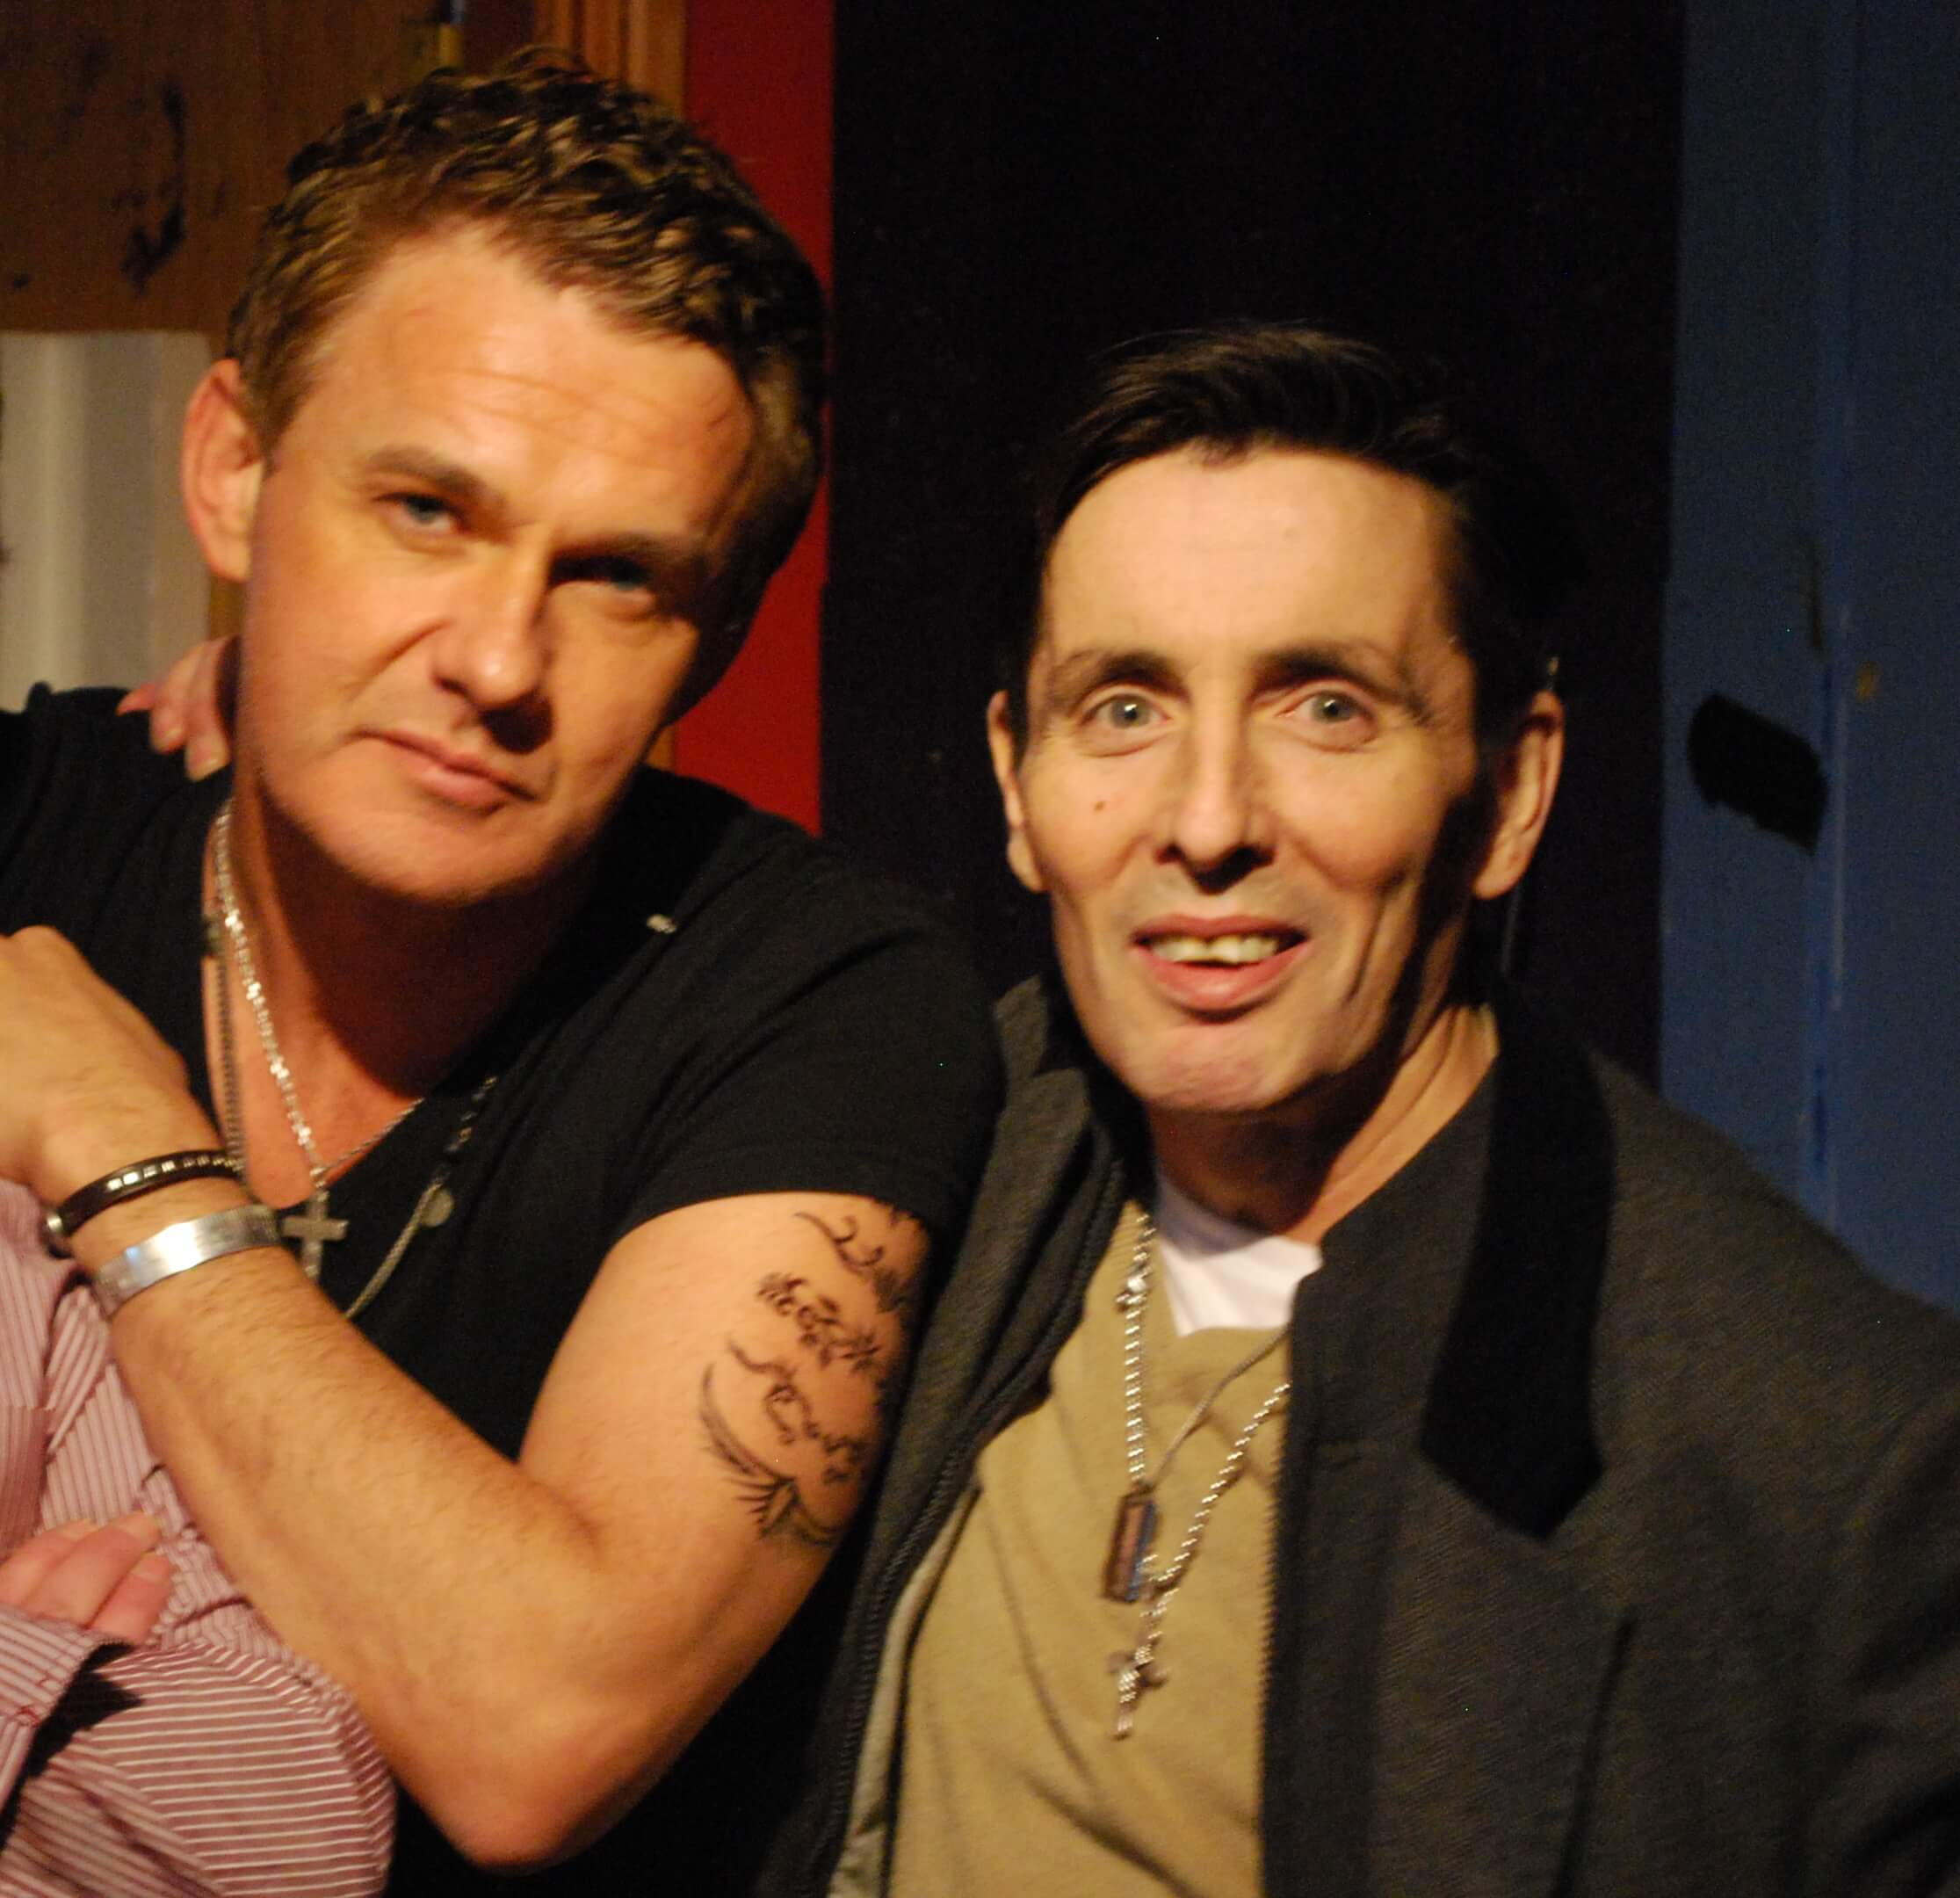 Don Mescall with Christy Dignam in Studio